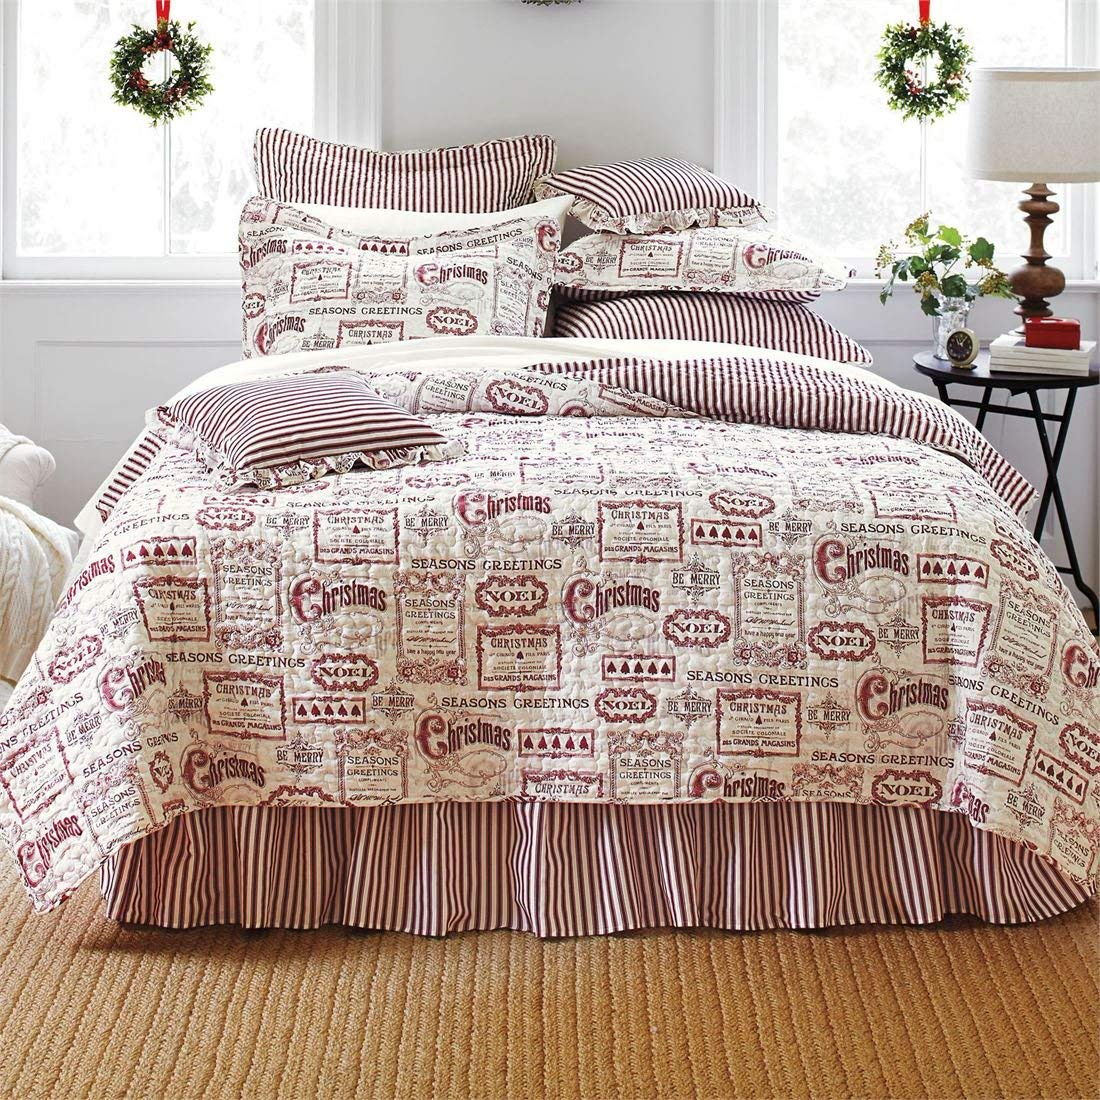 BrylaneHome Quilt Set - Christmas Bed Quits